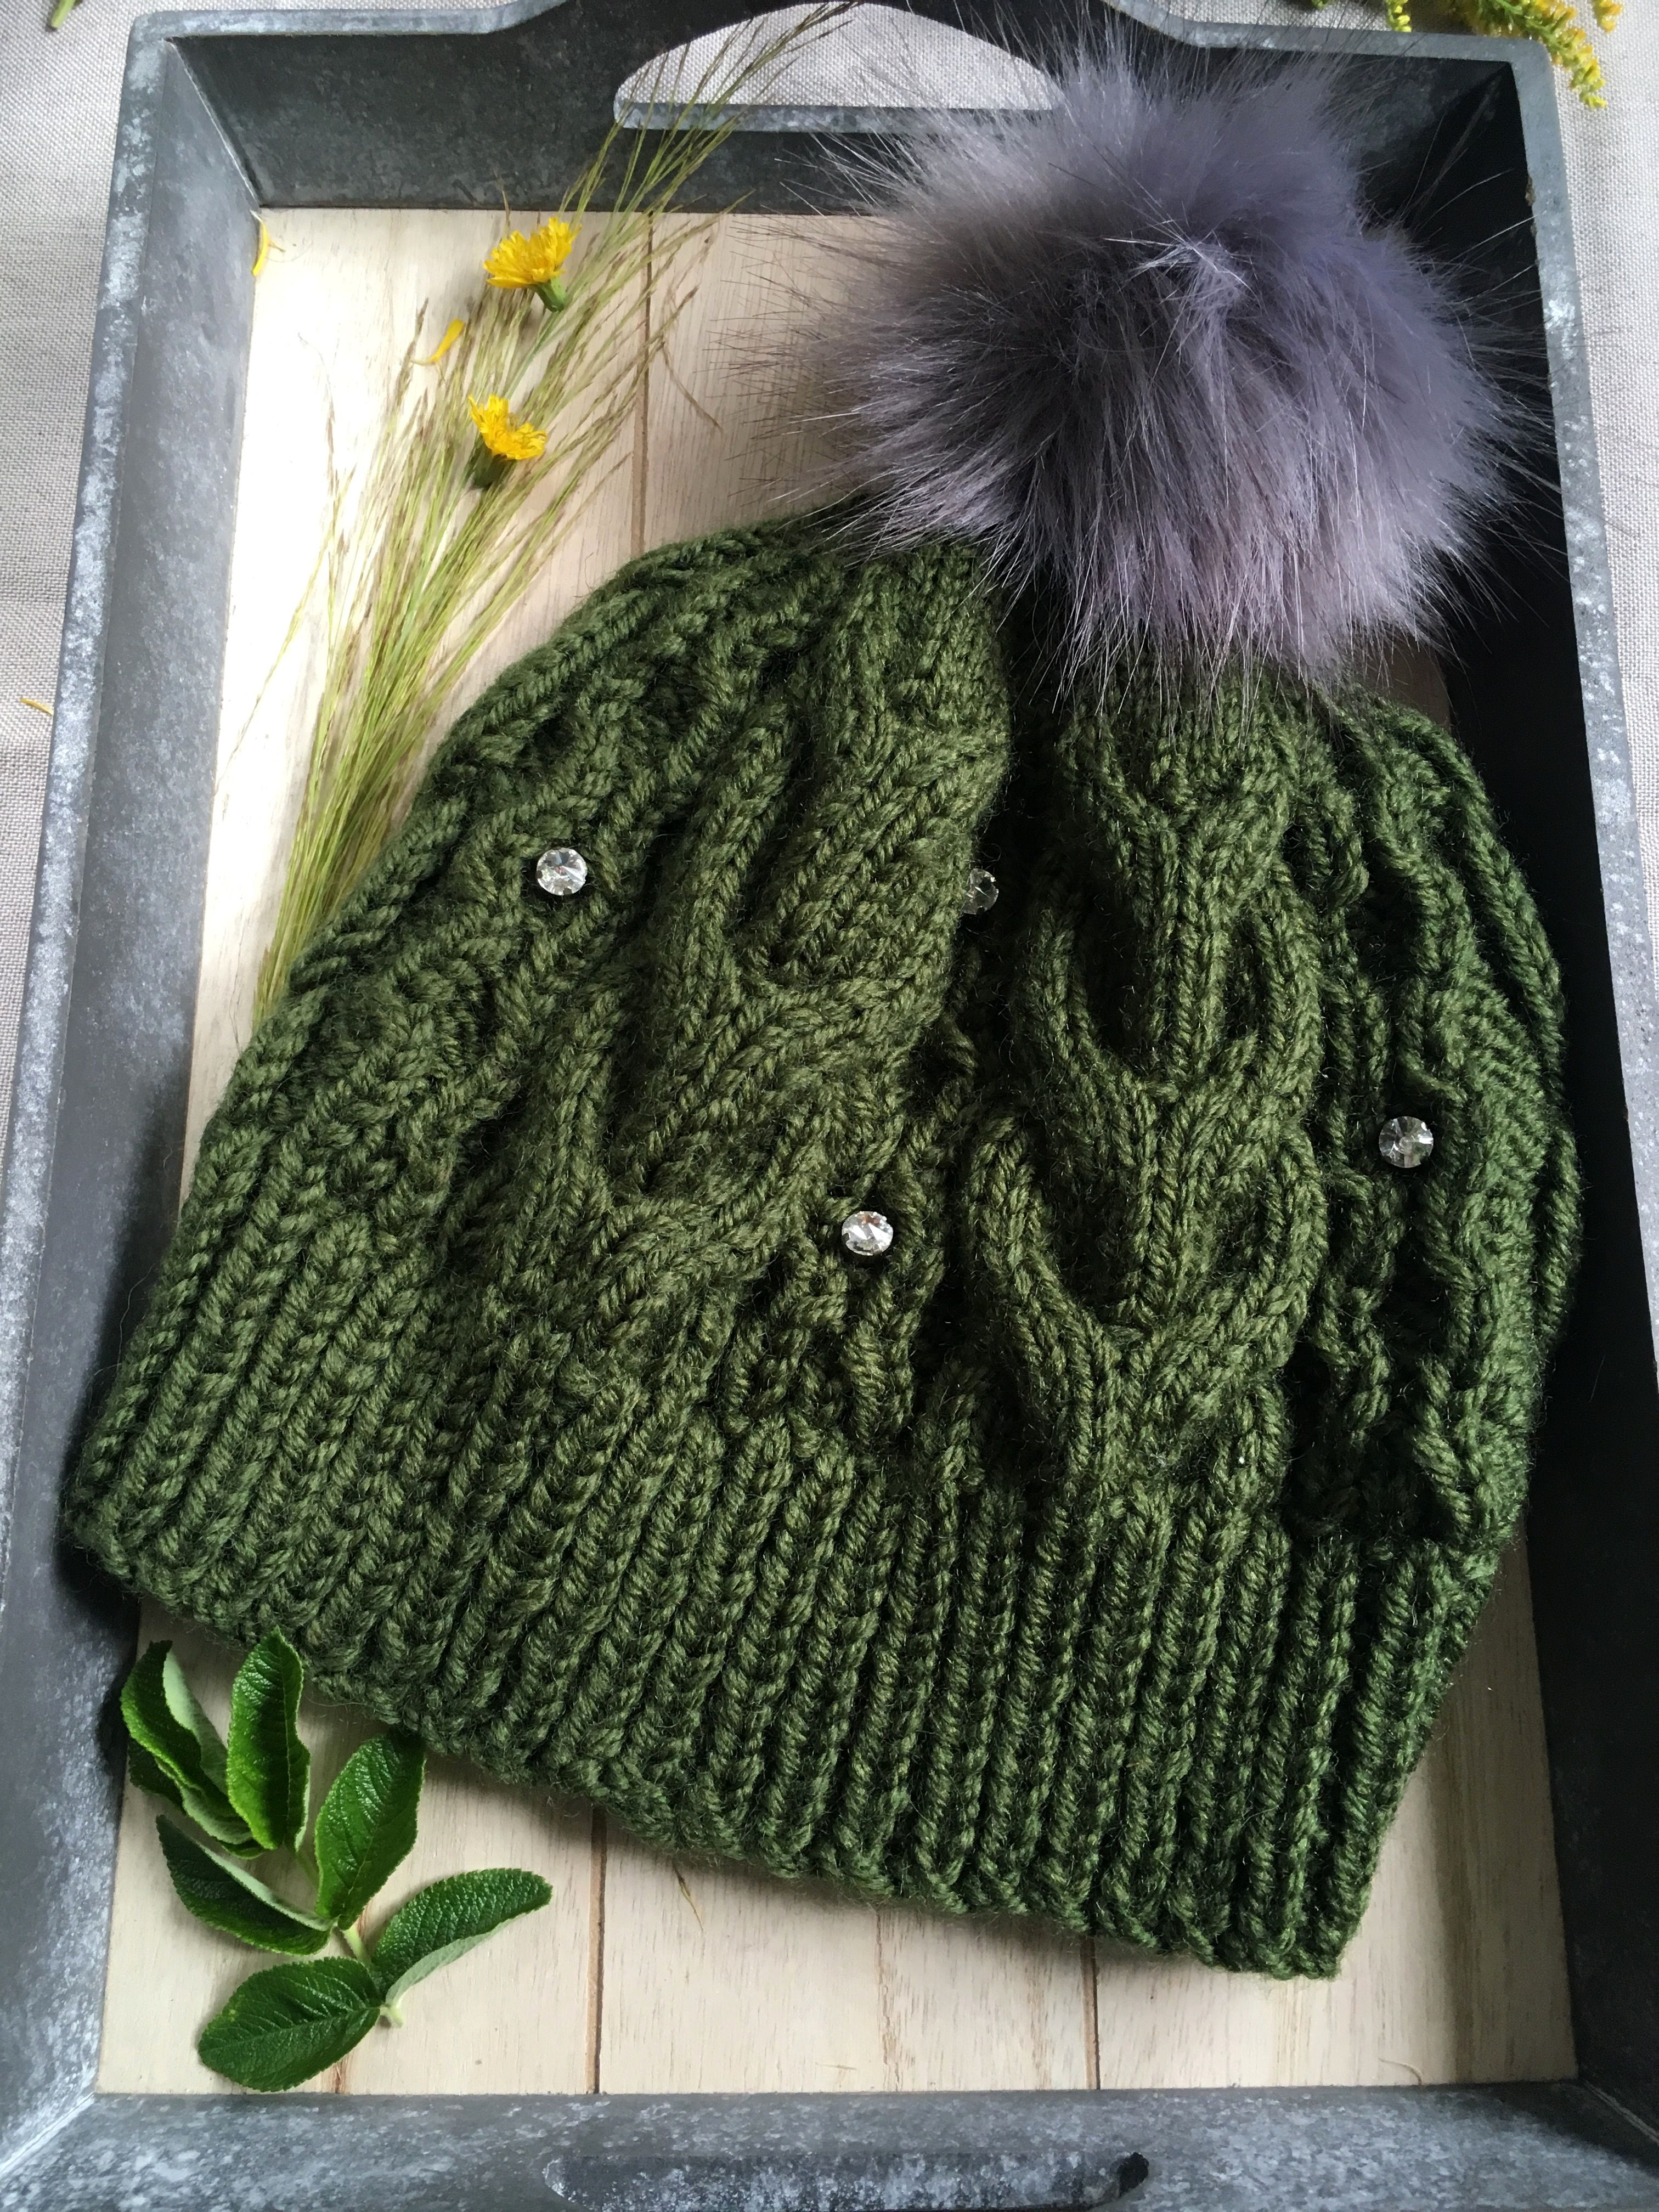 2a0b9150b32c5 Hand-knitted hat Olive green hat With pearls imitation Knit hat for women  Gift for her Ski hat Autumn hat Chunky knit beanie Pom pom hat